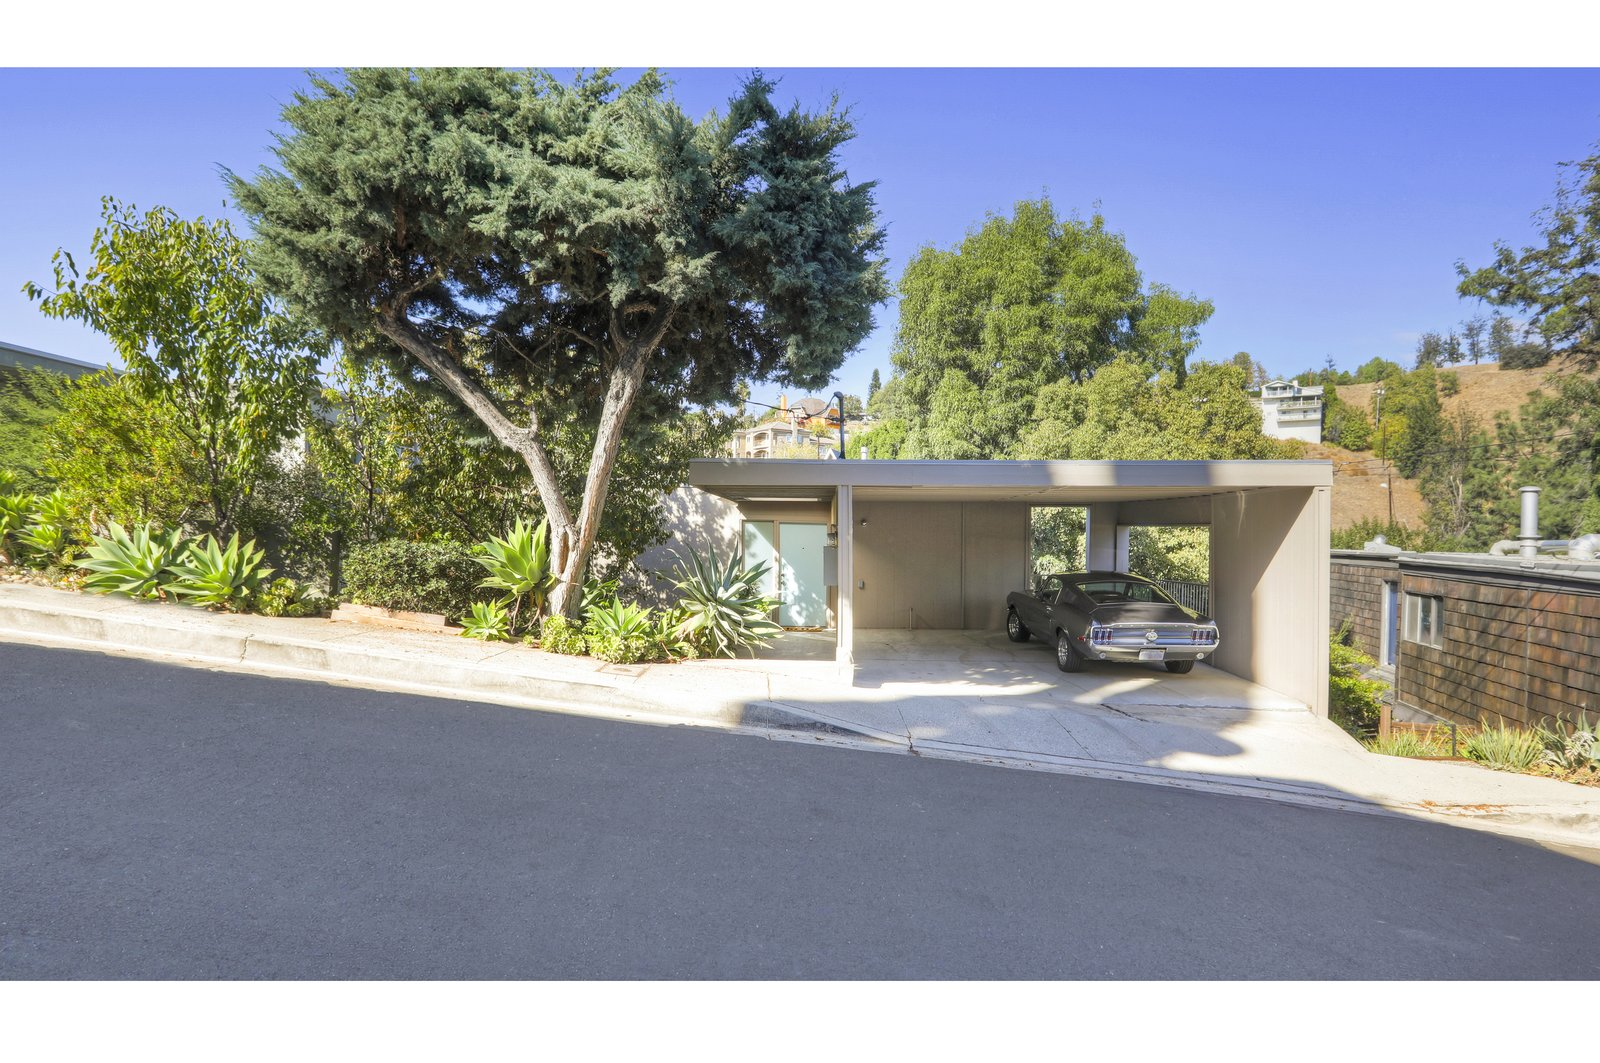 Set on a hillside and surrounded by greenery, 3877 Latrobe Street was built in 1964 as part of The Cliffs, a modernist development in the Montecito Heights neighborhood of Los Angeles.